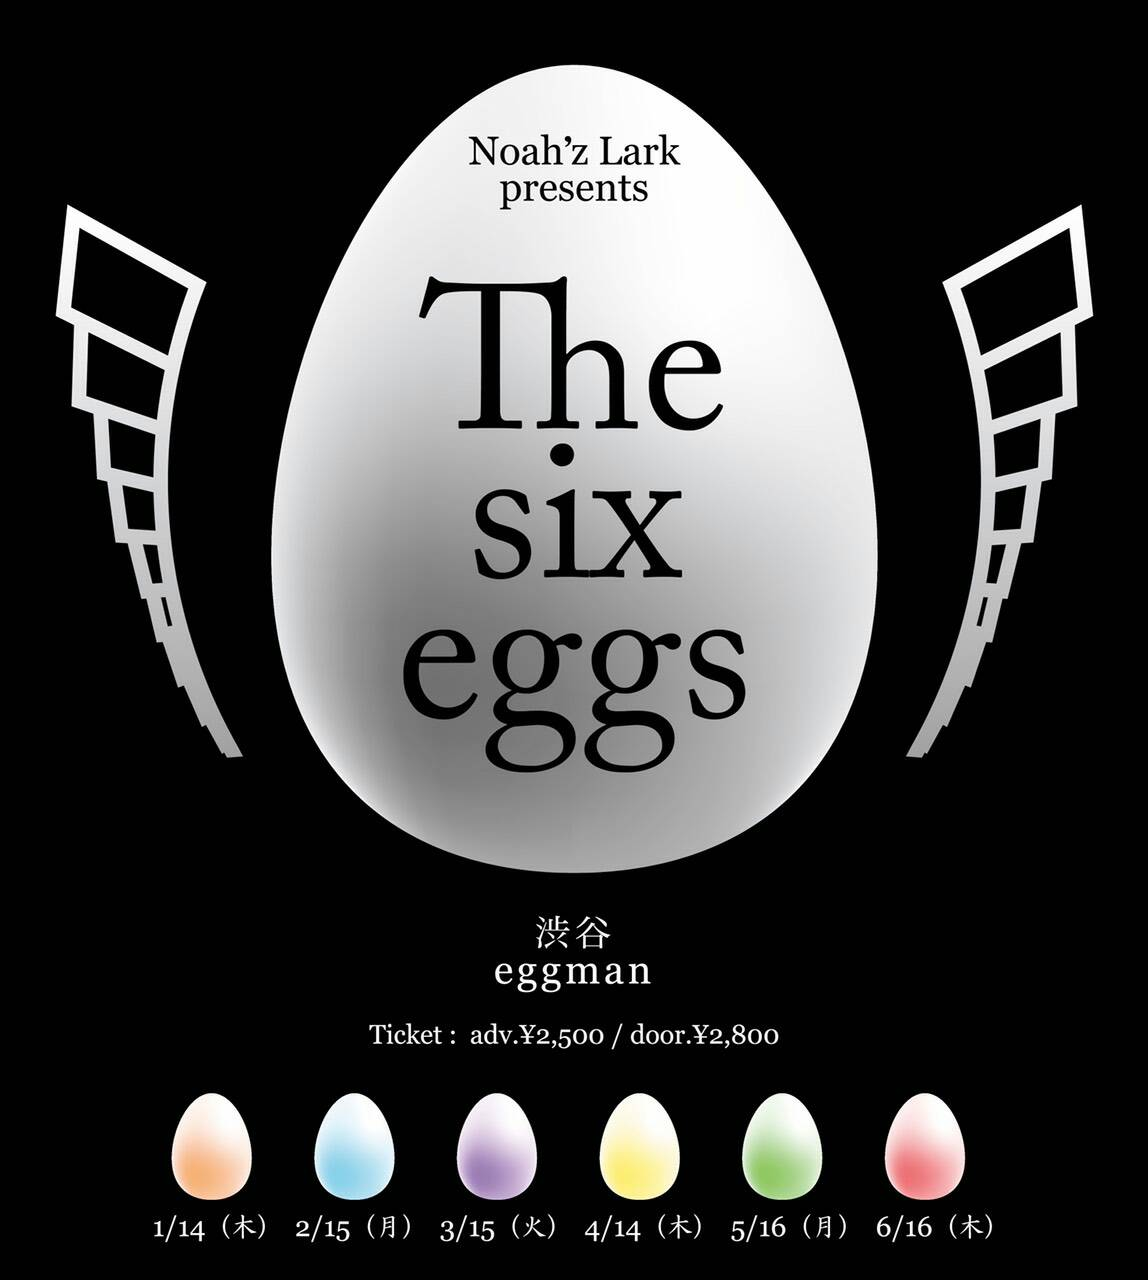 Noah'z Lark presents [The six eggs vol.3]